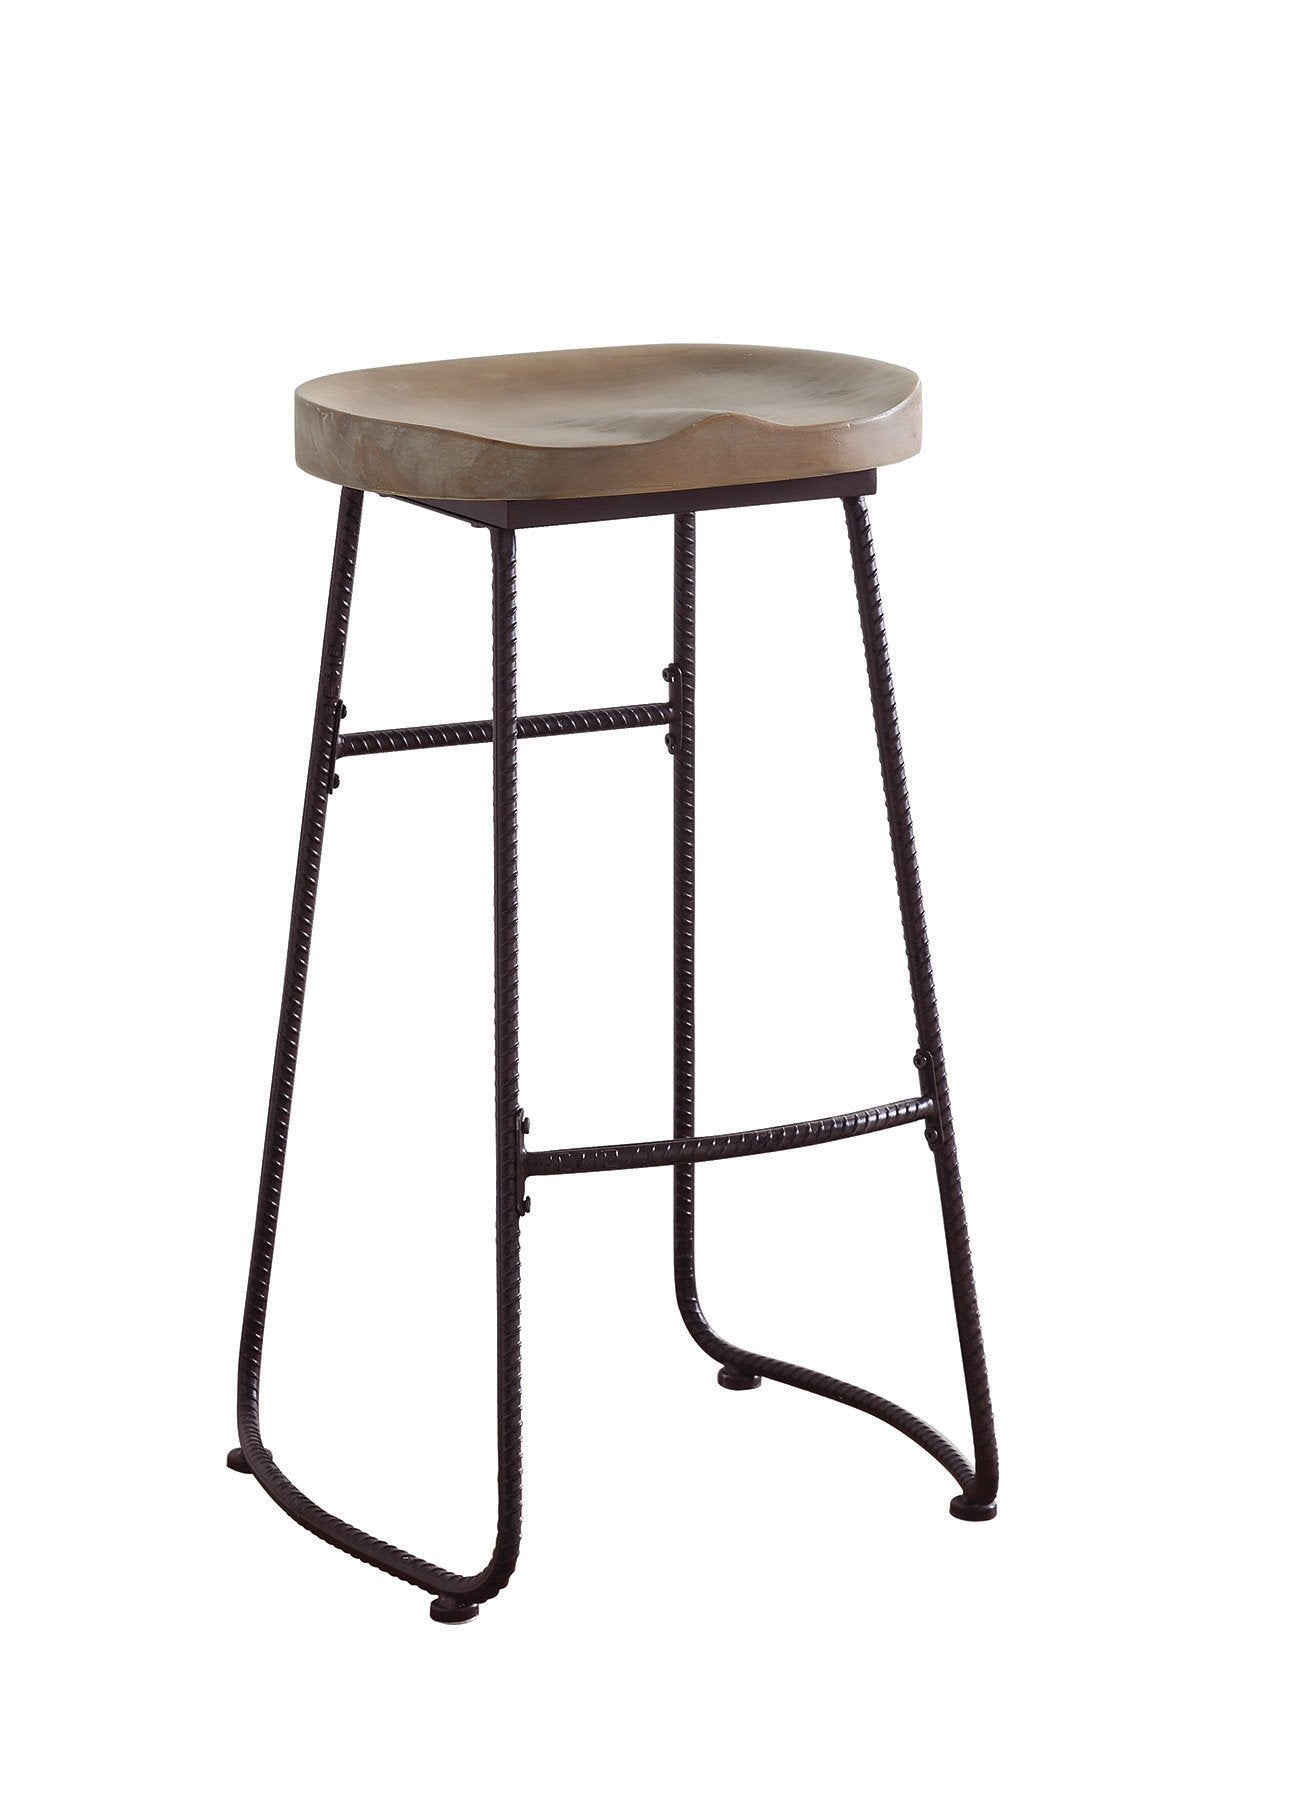 Dark Bronze Wood Finish Bar Stool